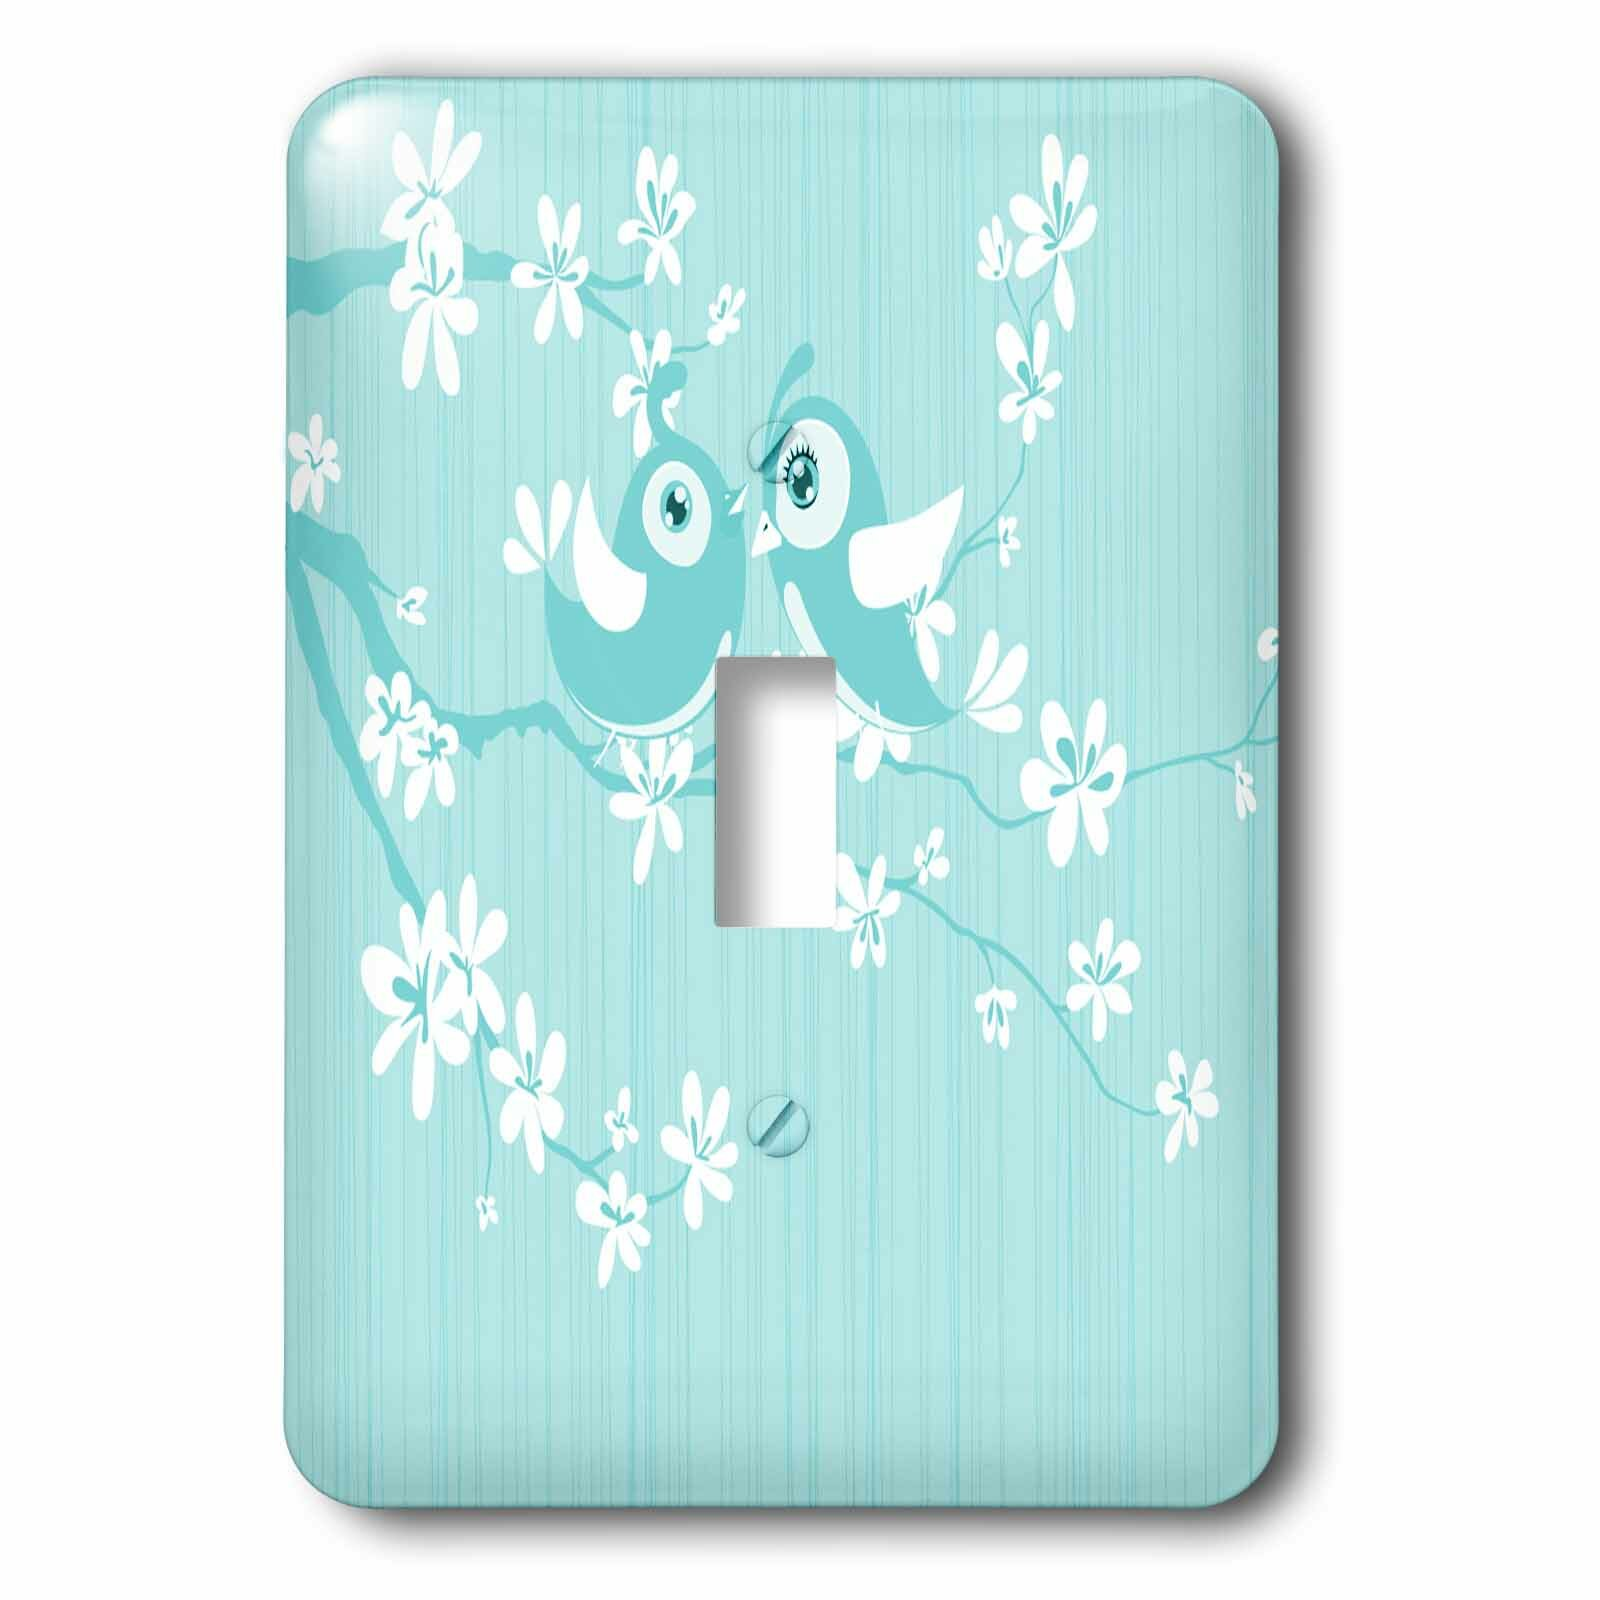 3drose Bird On Cherry Blossom 1 Gang Toggle Light Switch Wall Plate Wayfair